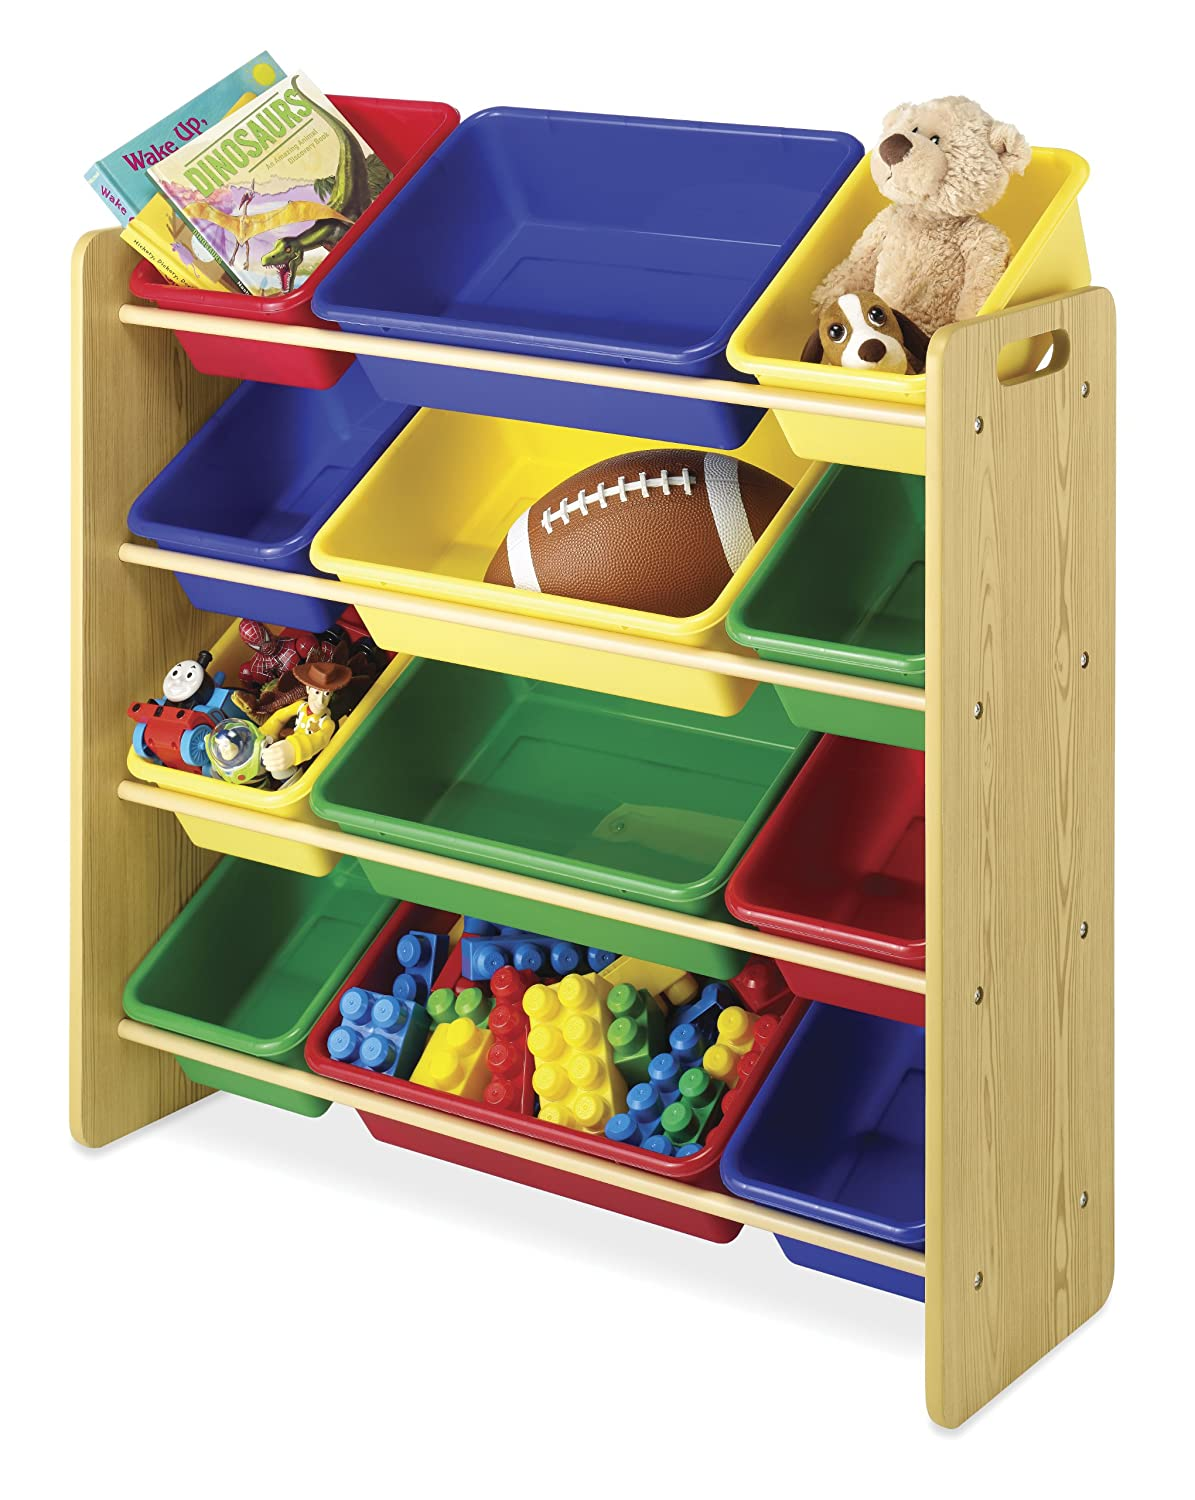 Amazon.com: Whitmor Kidu0027s Toy Storage   12 Easy Clean Bins   4 Tier Toy Rack  And Book Organizer   Primary Colors: Home U0026 Kitchen